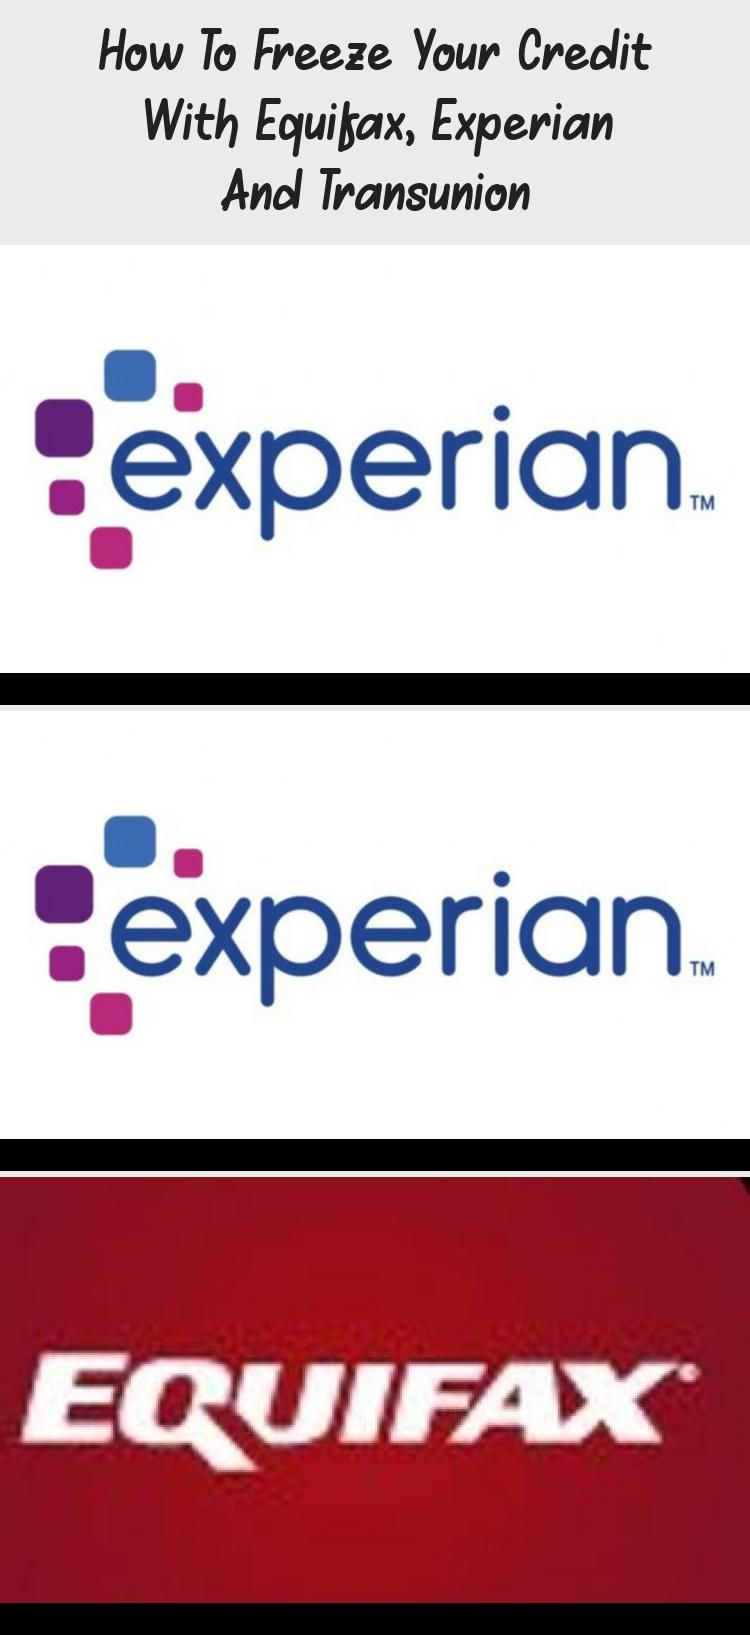 How To Freeze Your Credit With Equifax Experian And Transunion In